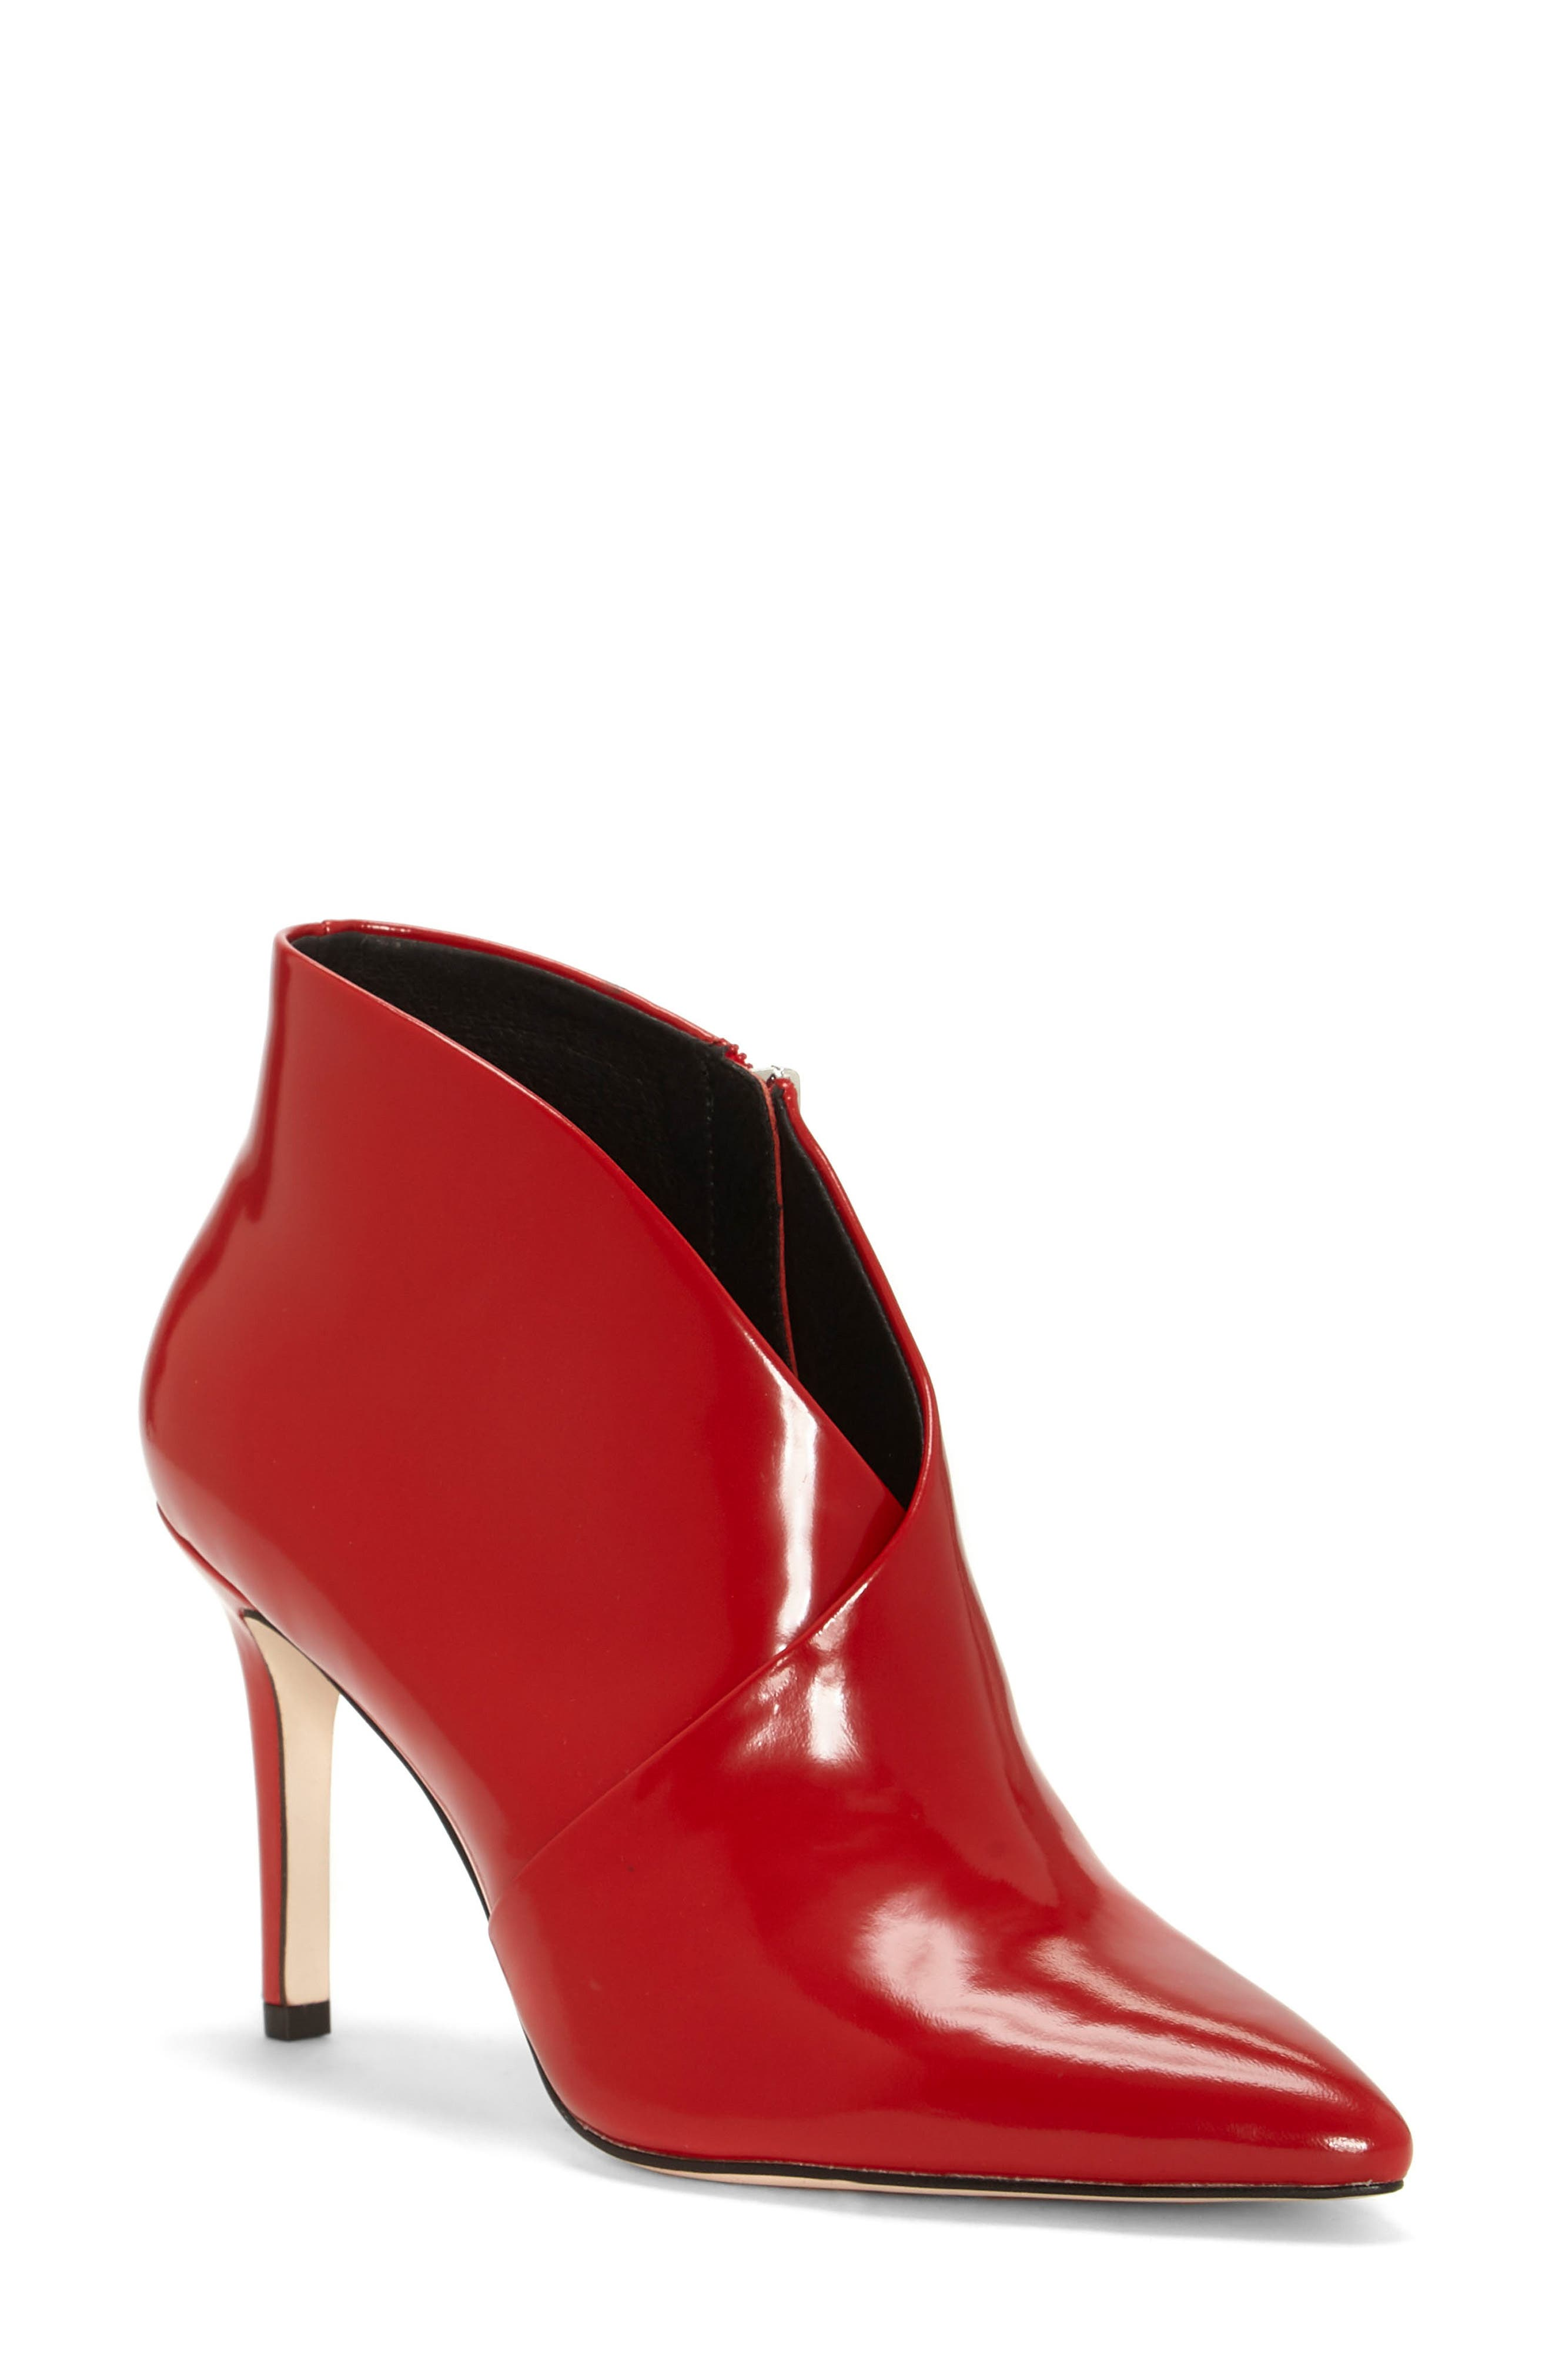 Jessica Simpson Layra Bootie, Red